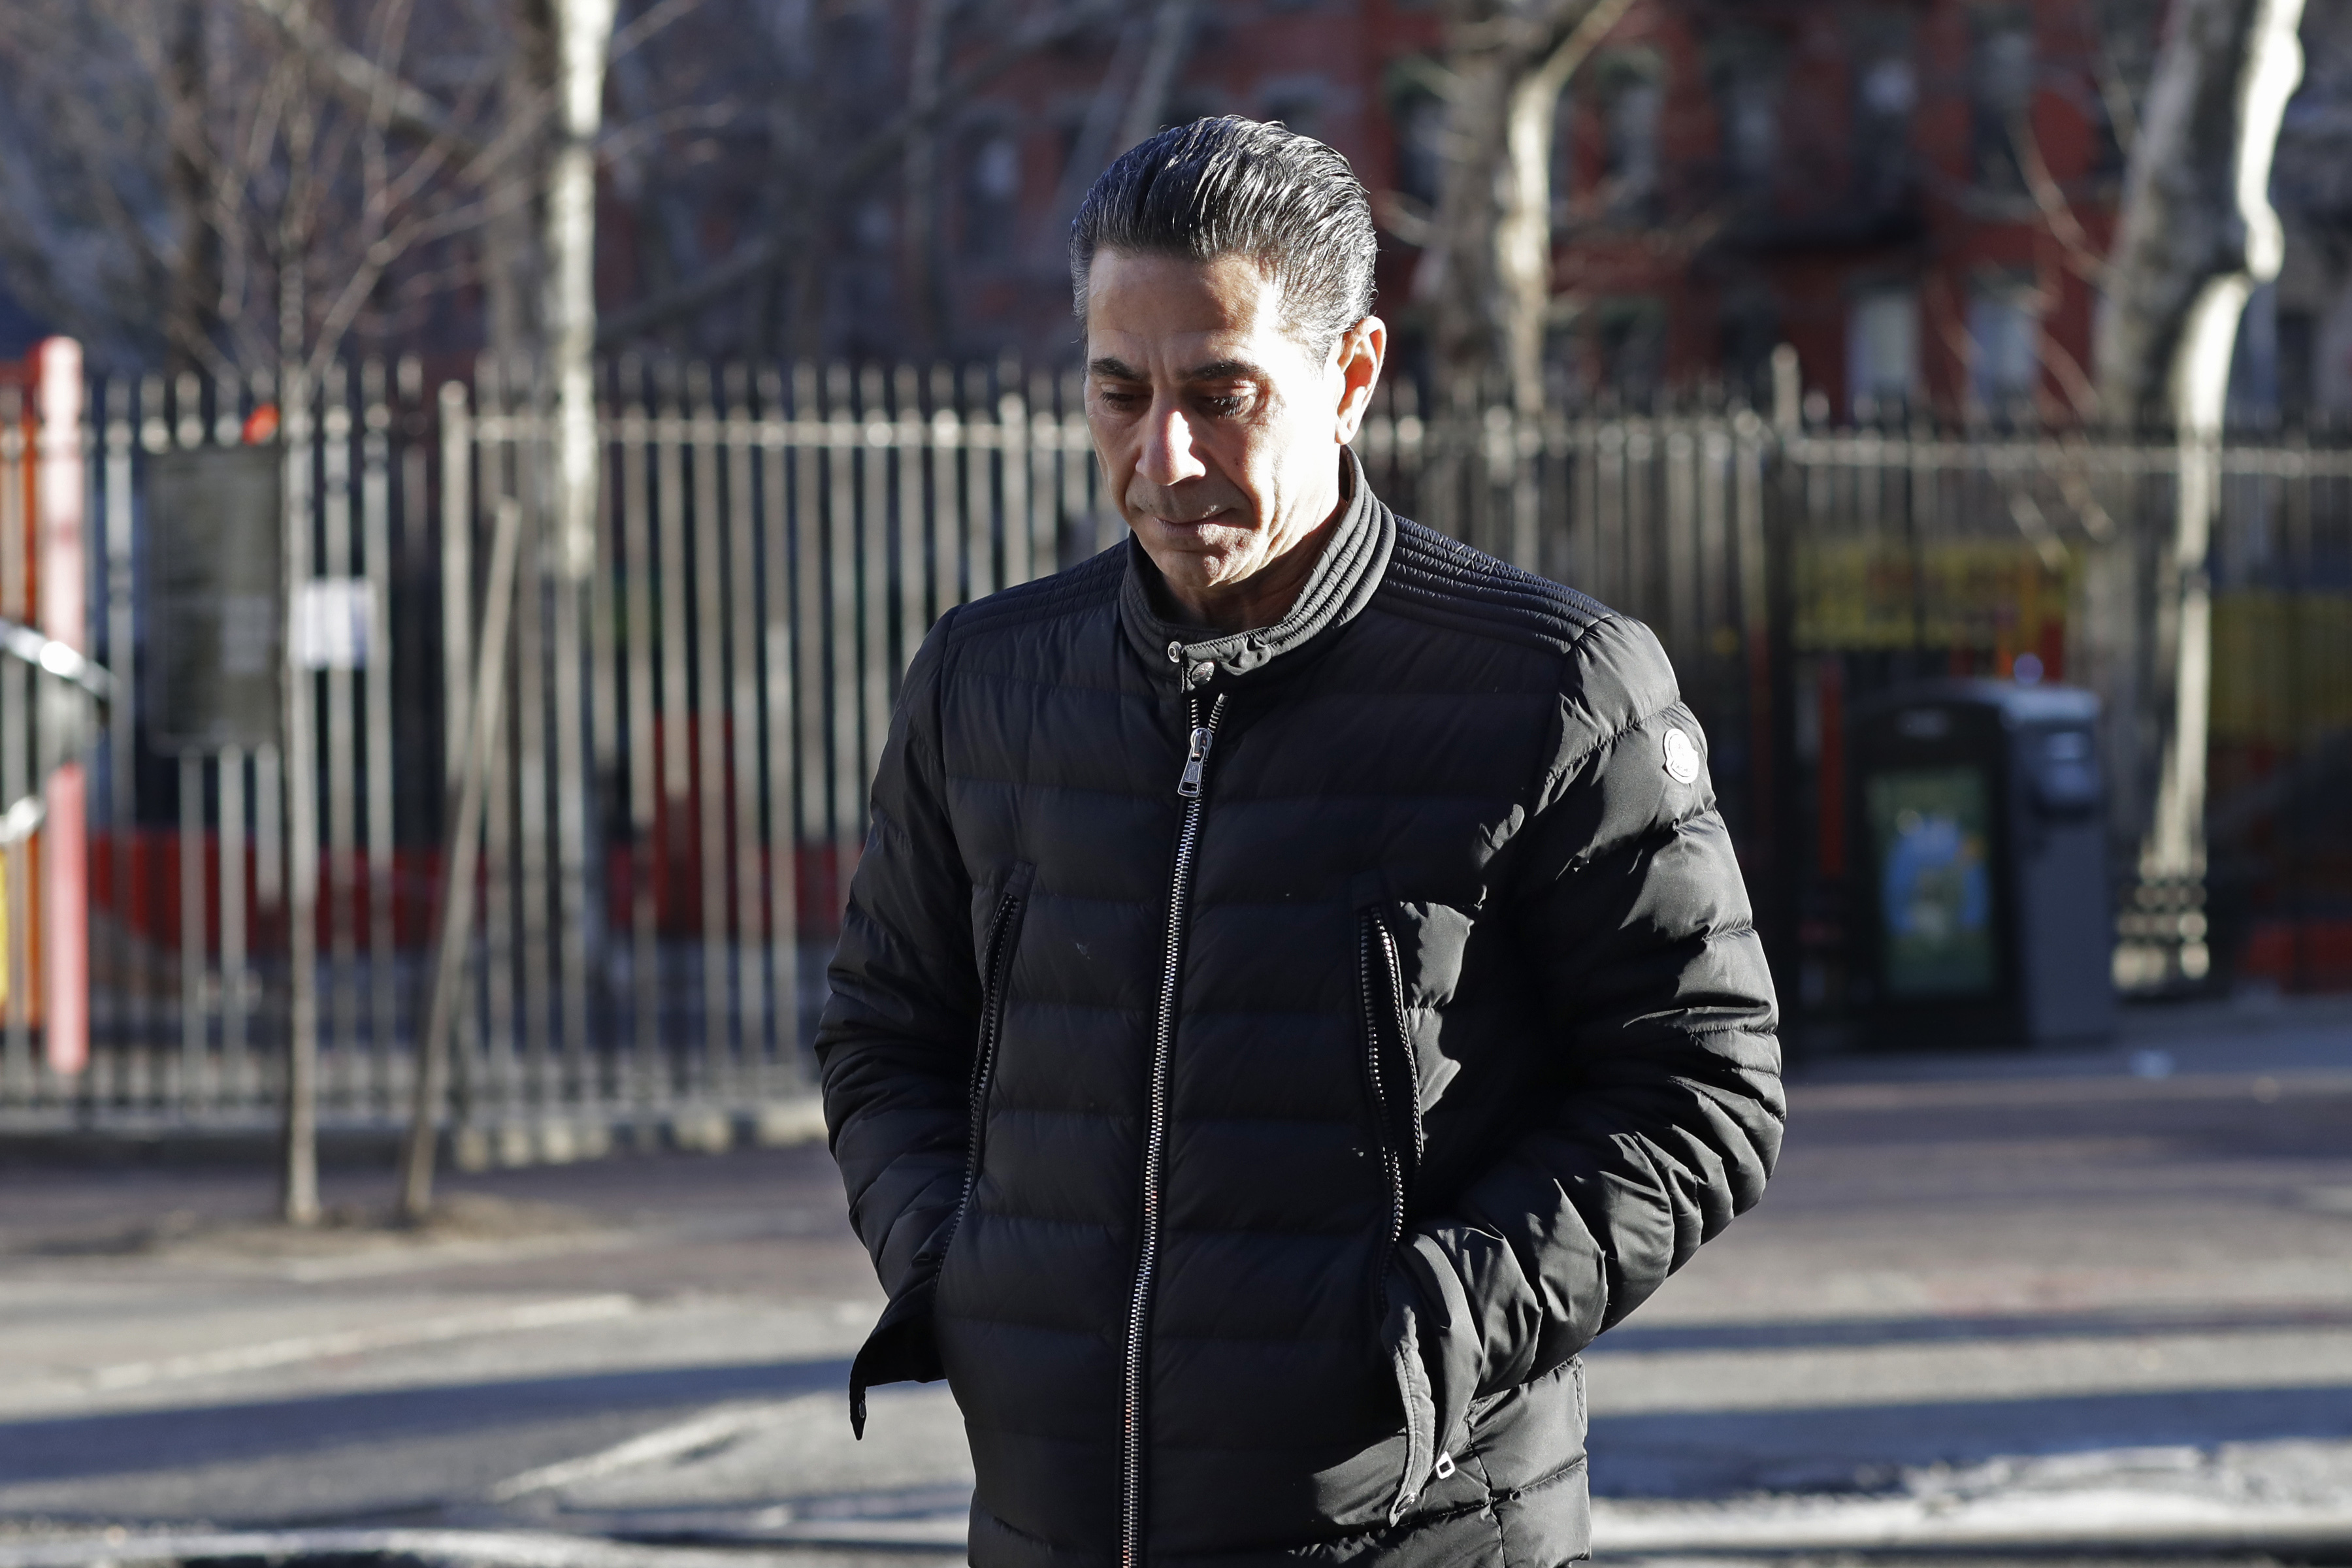 What Joey Merlino's Verdict Means for Philly's Mob Scene - VICE